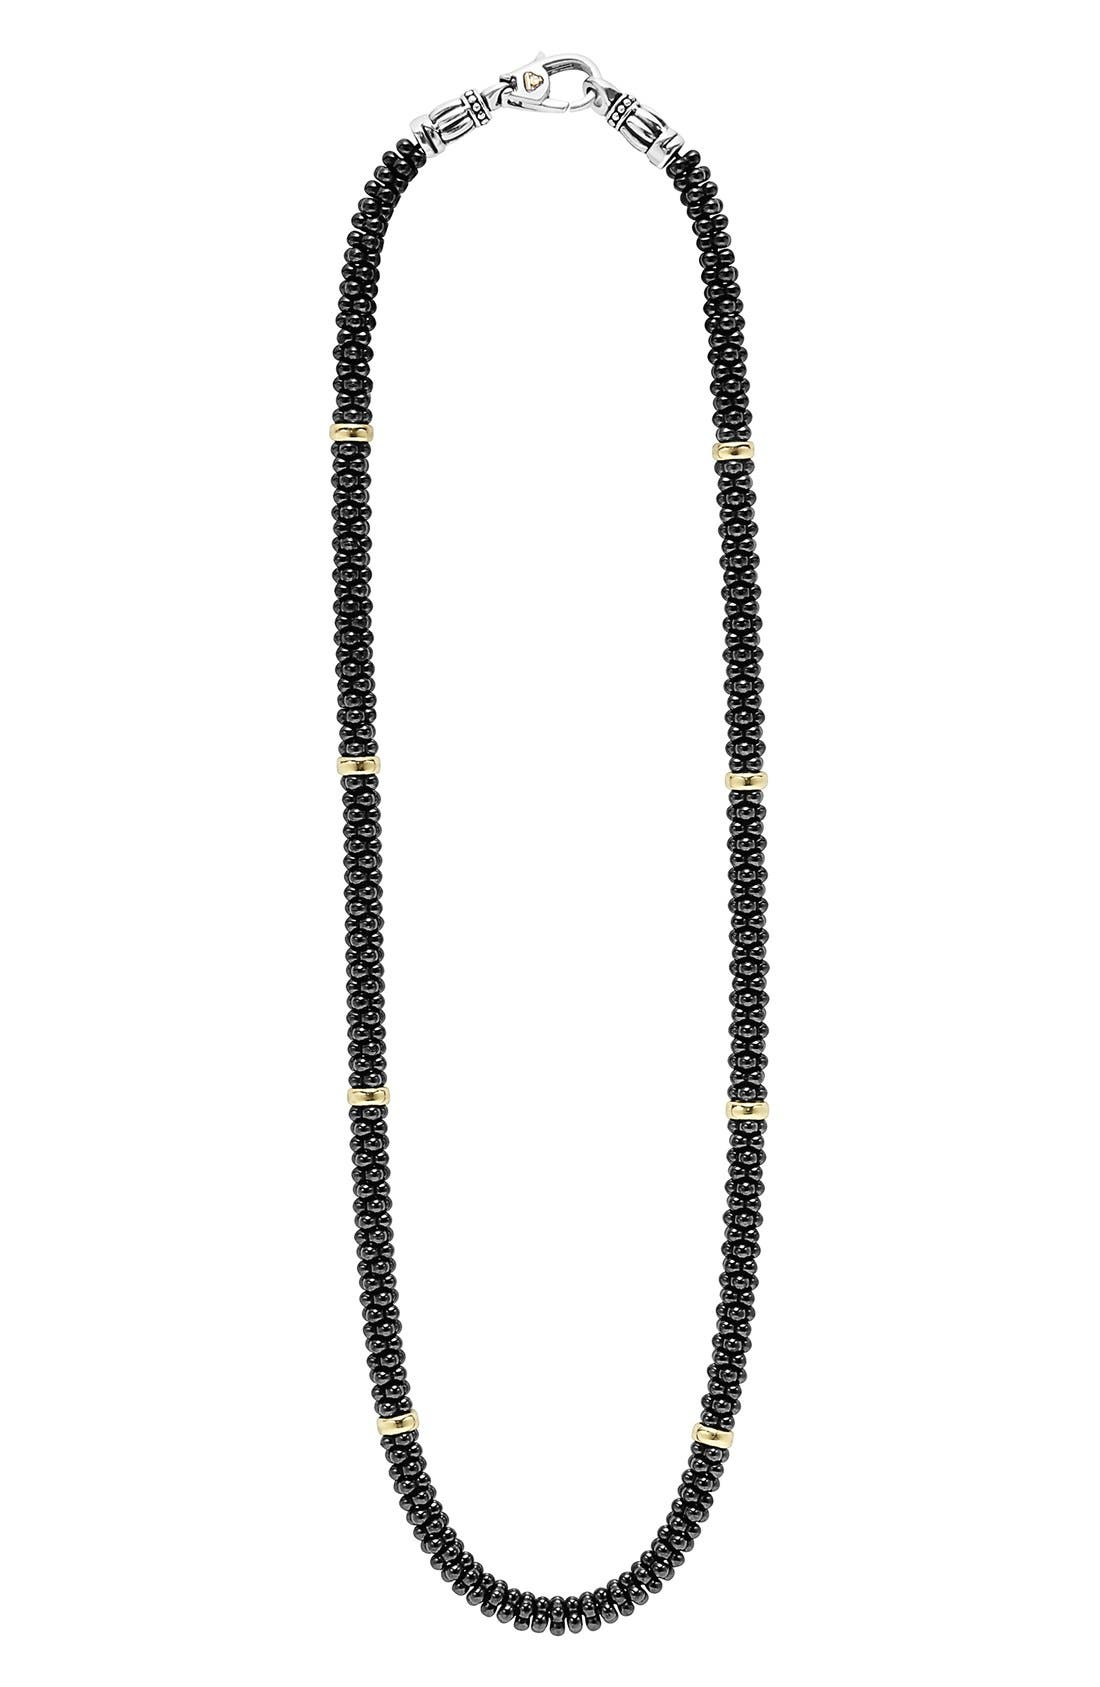 LAGOS Black Caviar Station Rope Necklace